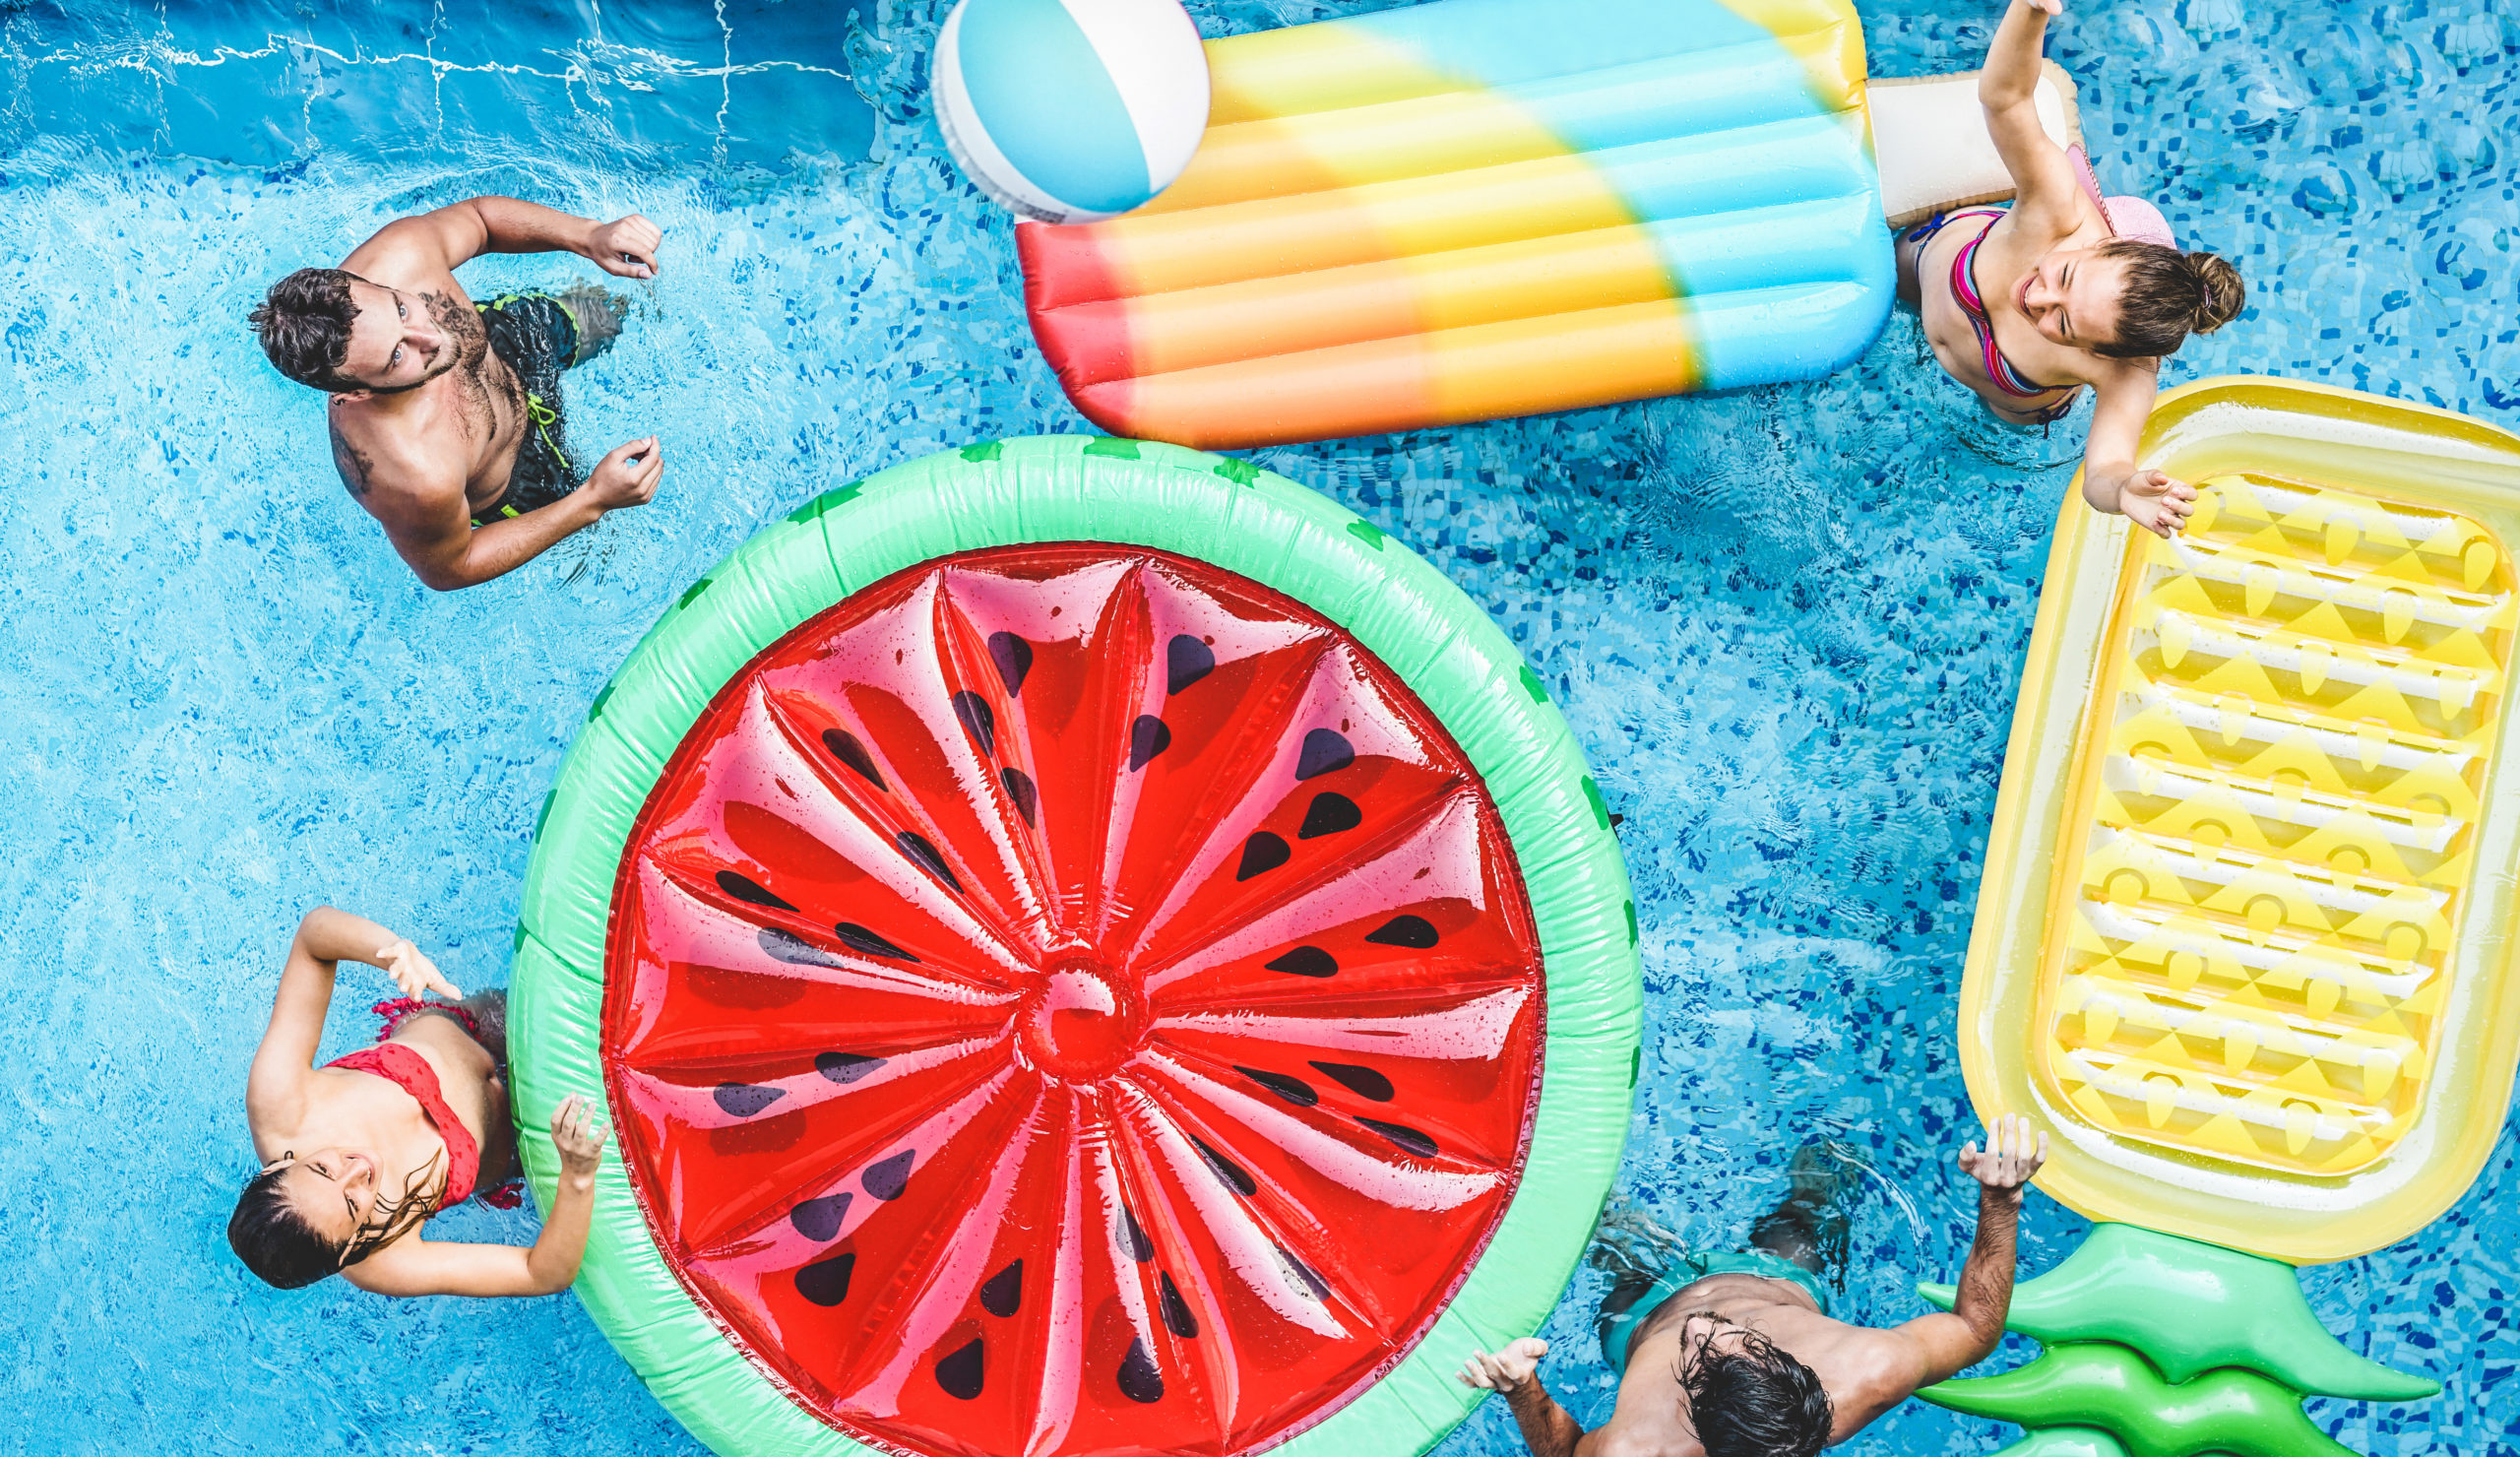 THE BEST UNIQUE POOL INFLATABLES FOR ADULTS